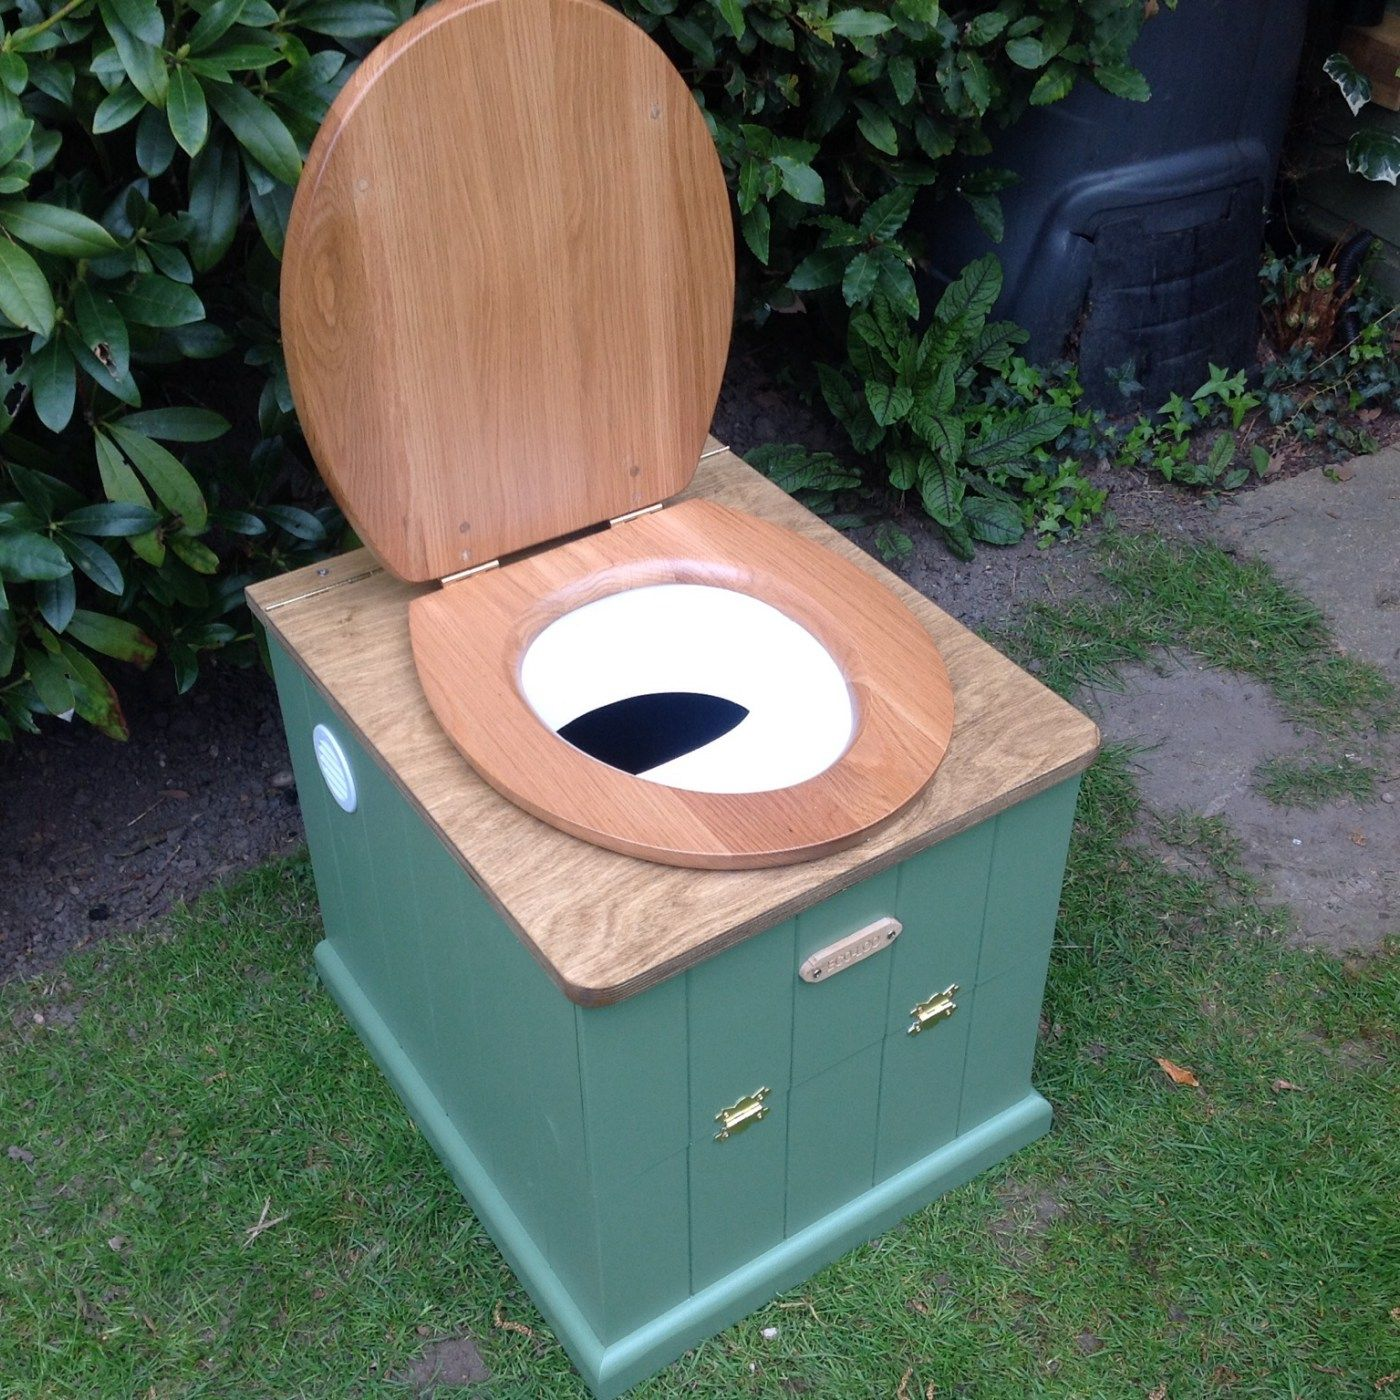 I like this compost toilet design the best | RV dreamin | Pinterest ...